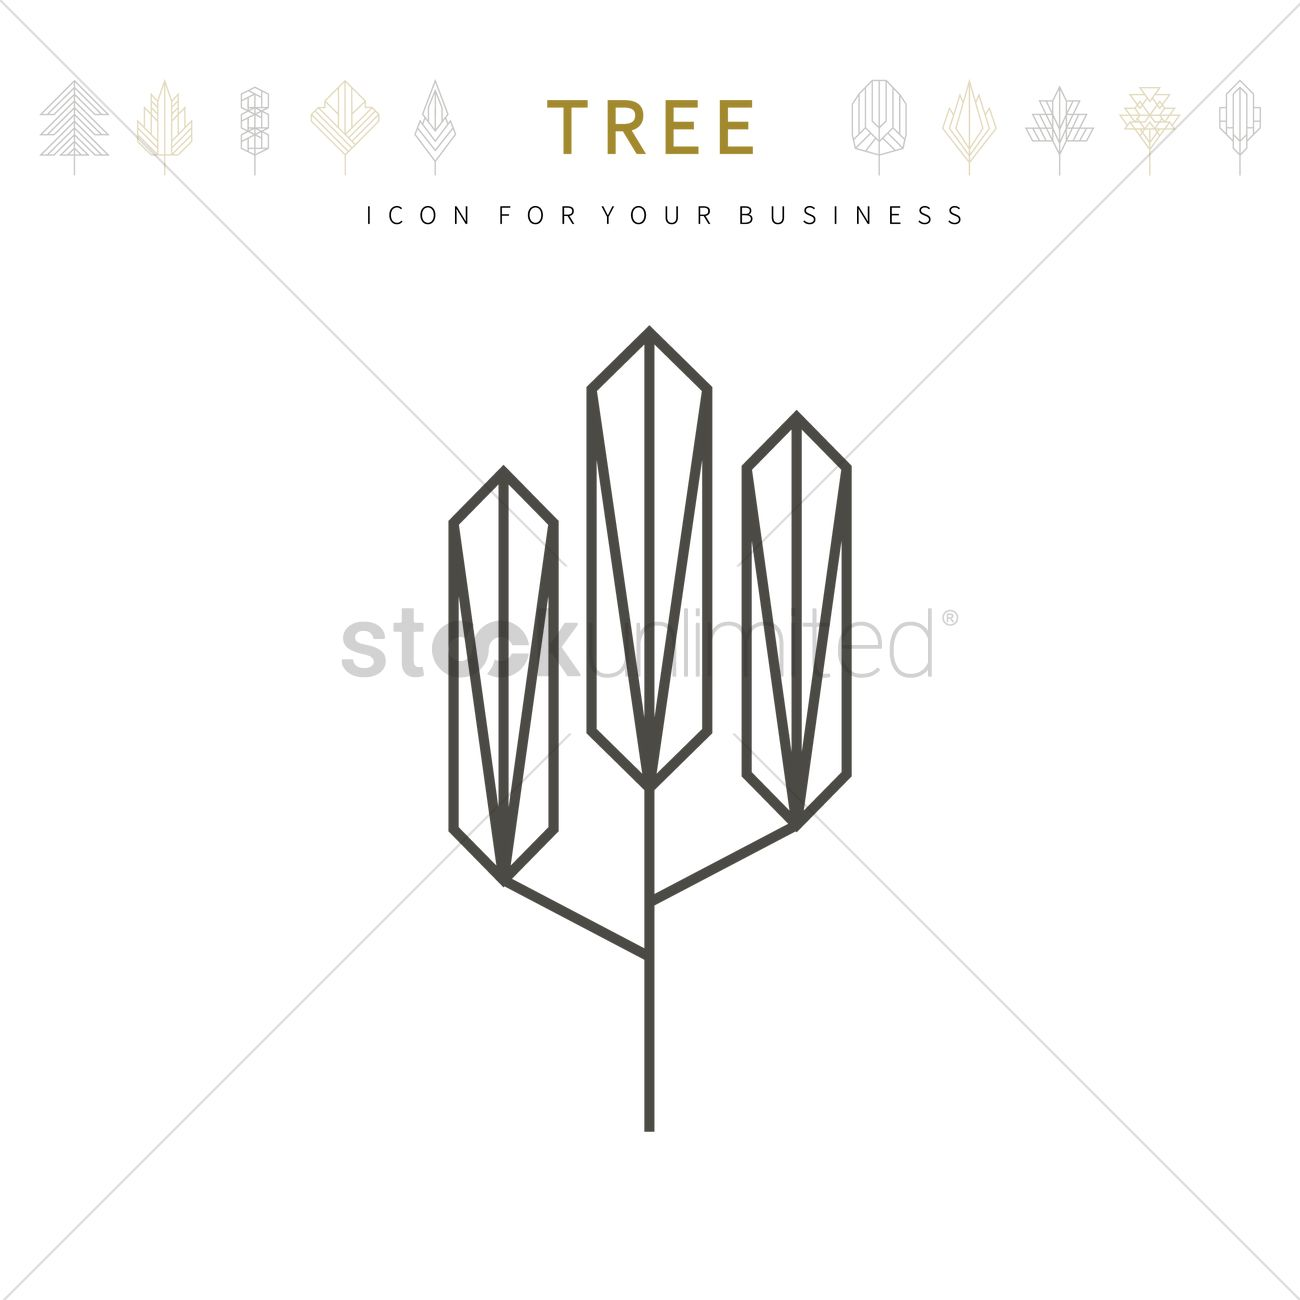 Tree template design vector image 1979905 stockunlimited tree template design vector graphic friedricerecipe Choice Image